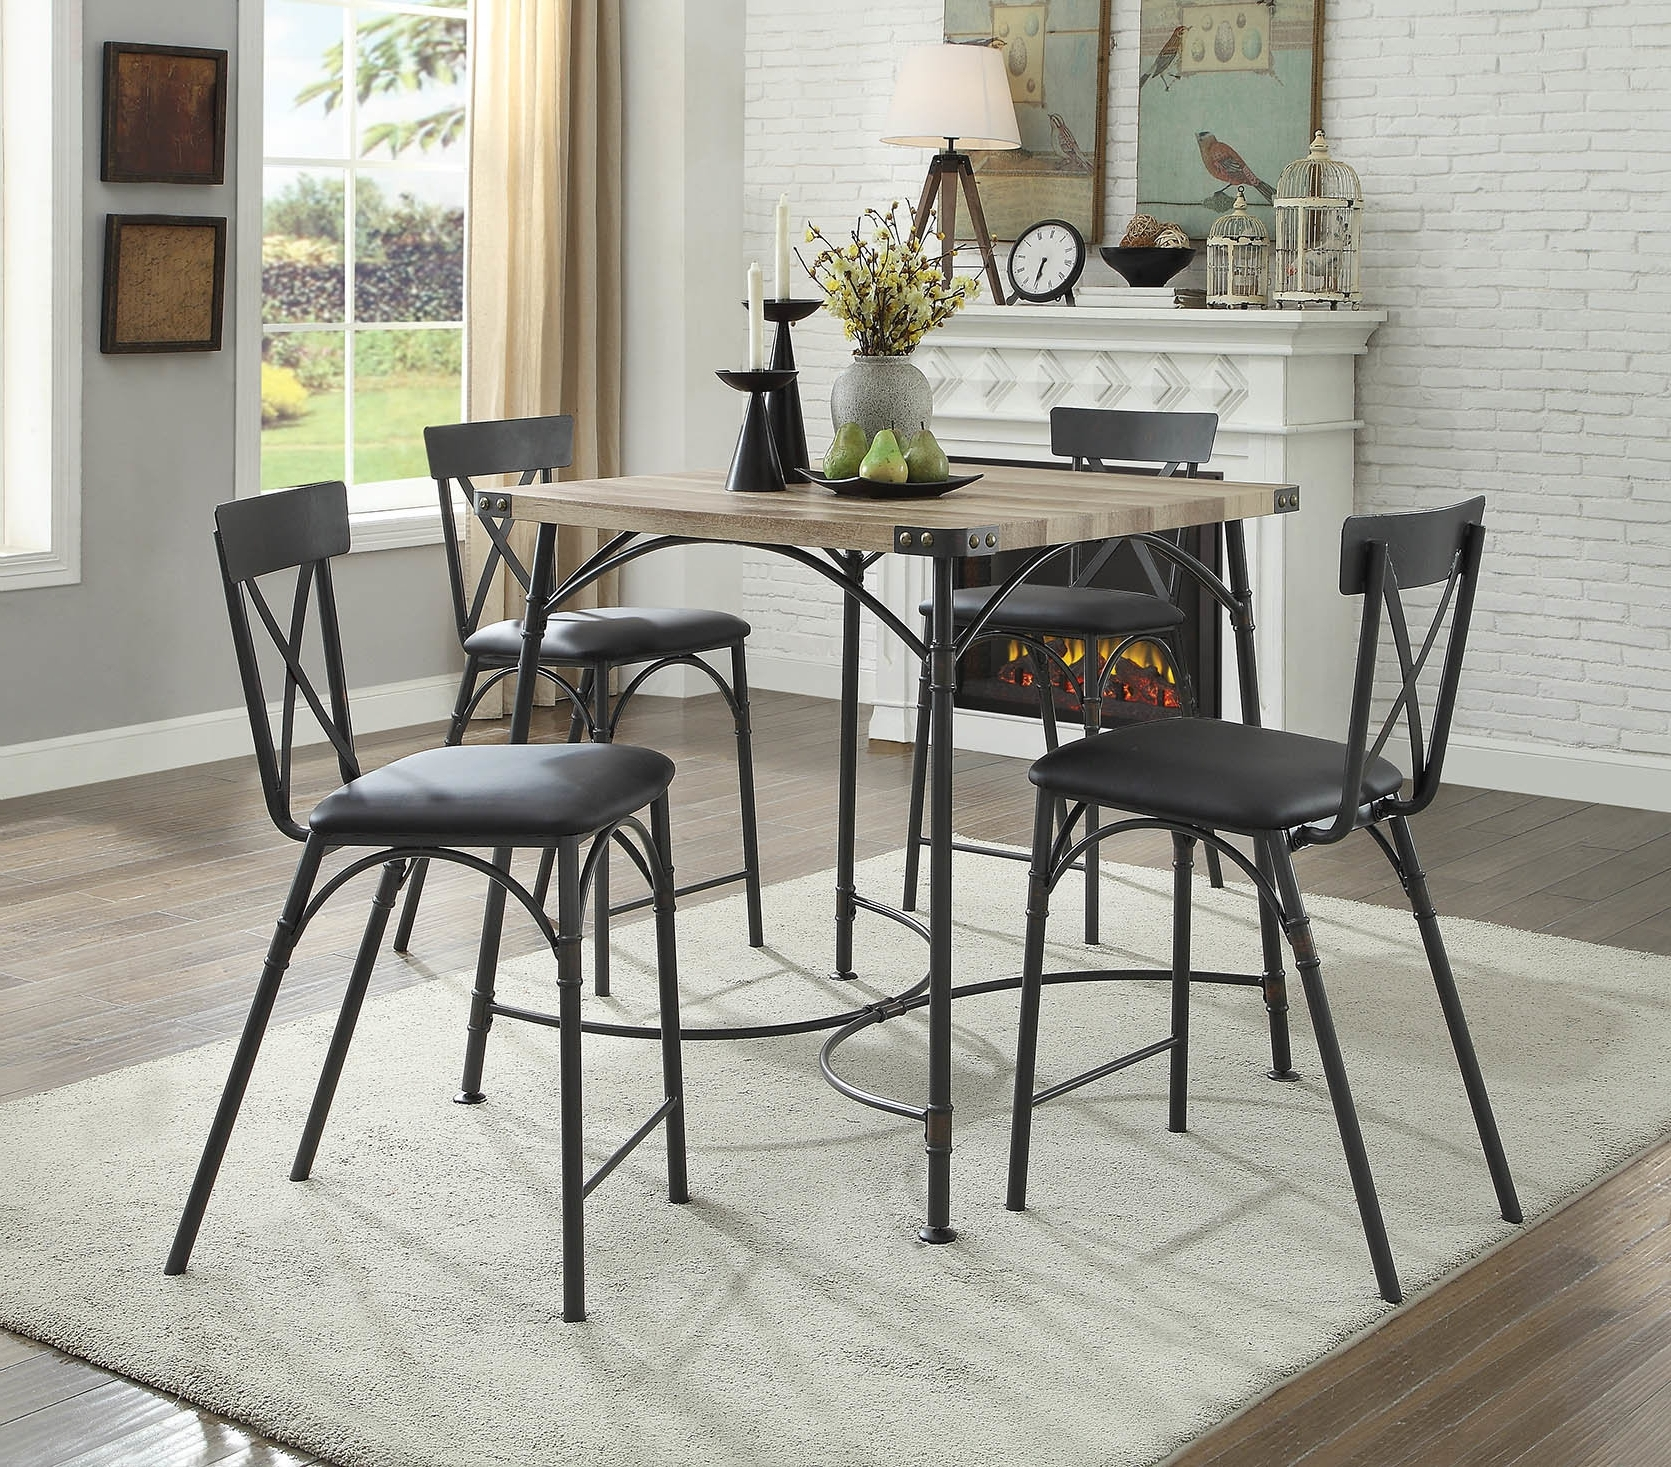 Wayfair With Regard To Caira Black 5 Piece Round Dining Sets With Upholstered Side Chairs (View 6 of 25)